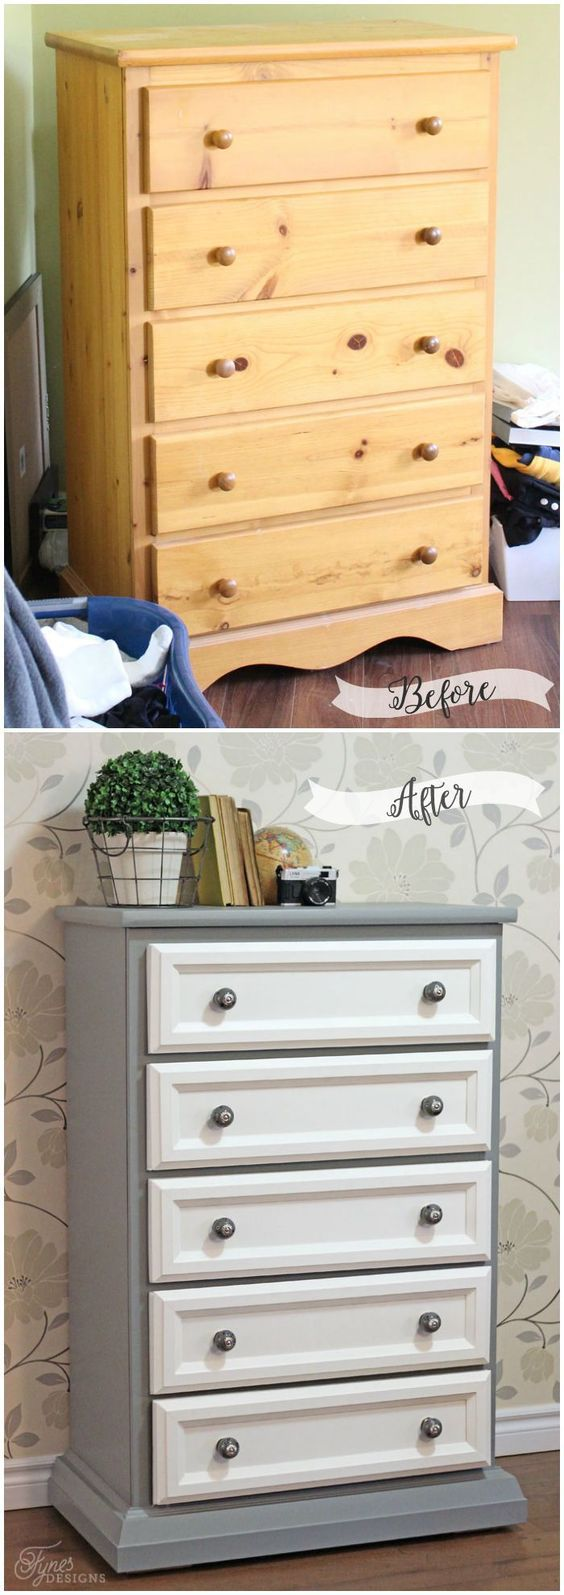 Tall Dresser Makeover Tutorial with Trim and Paint: